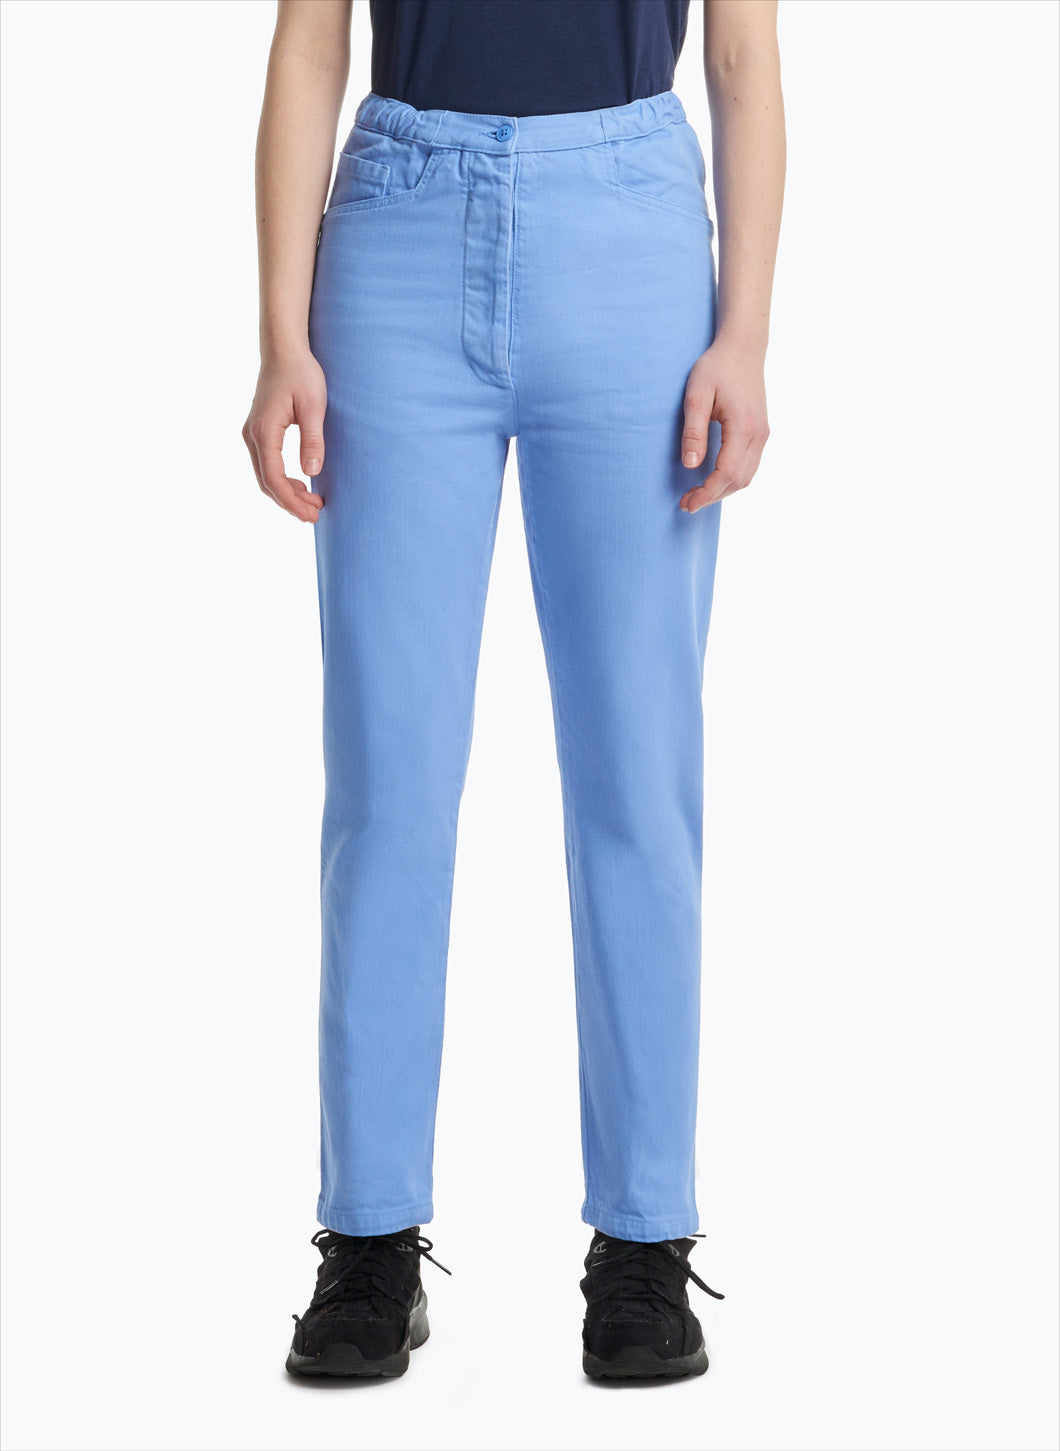 5-Pocket Pants in Light Blue Denim